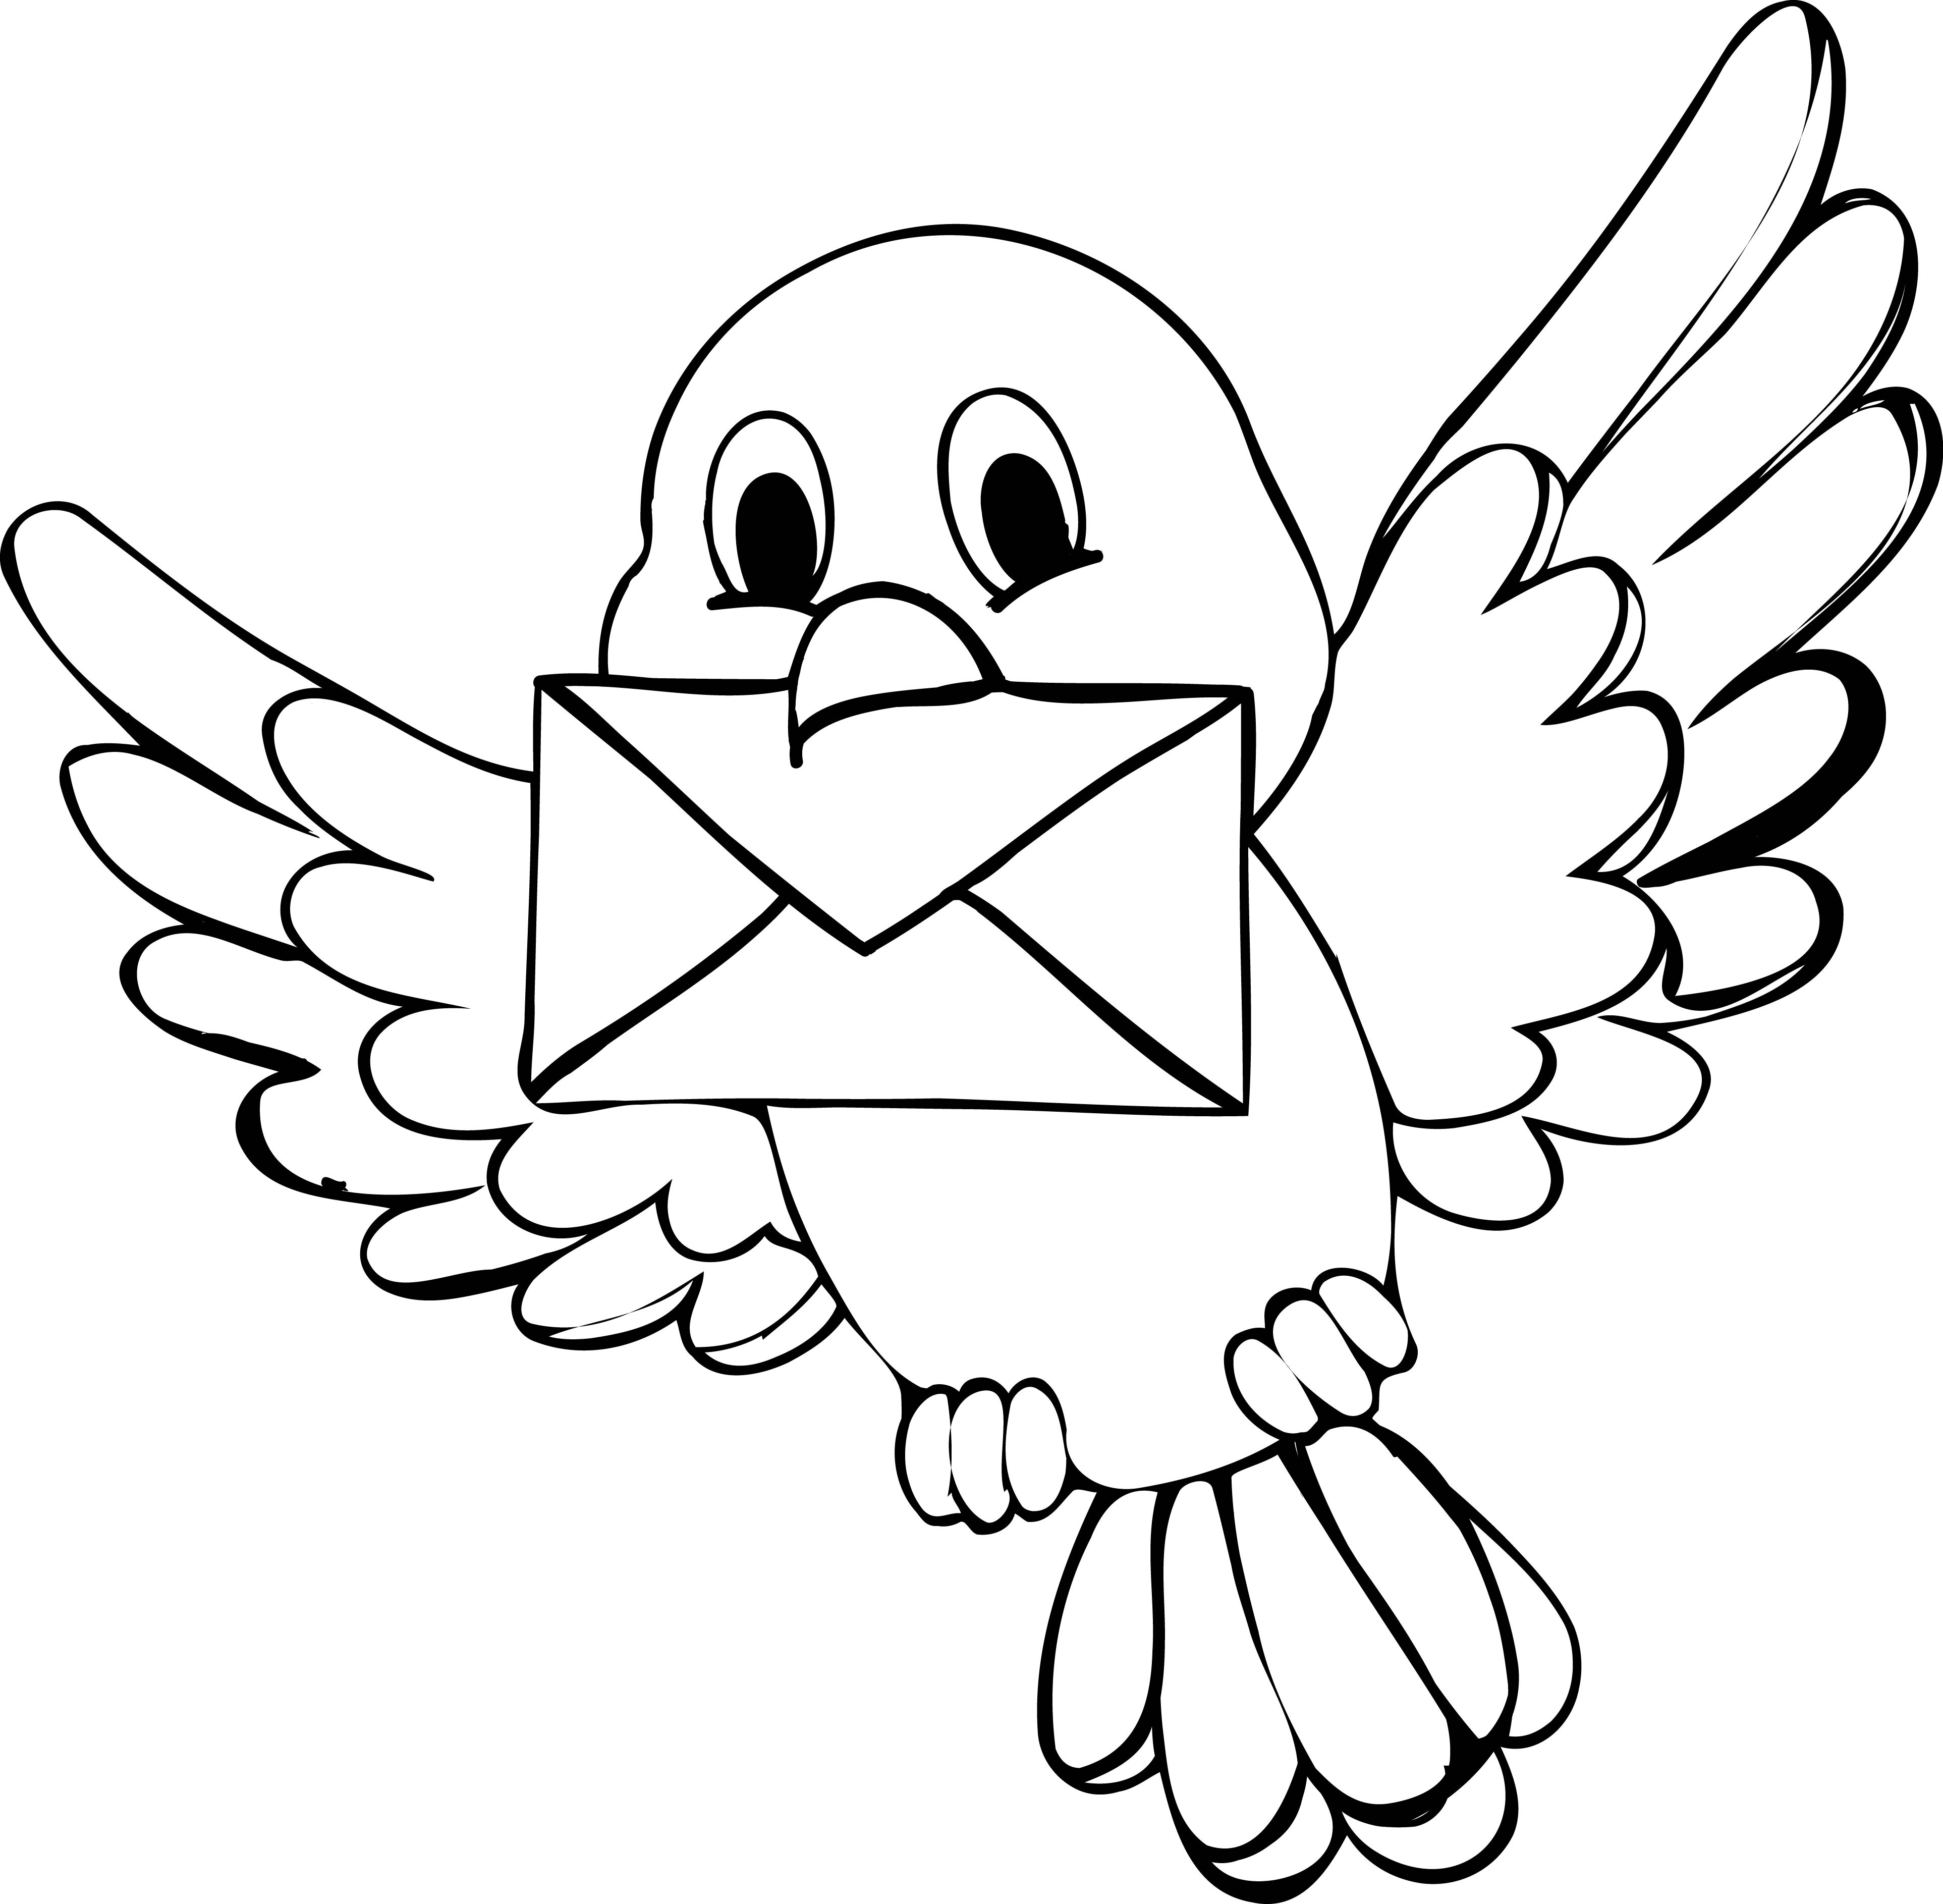 3851x3773 Cute Bird Coloring Page Wecoloringpage